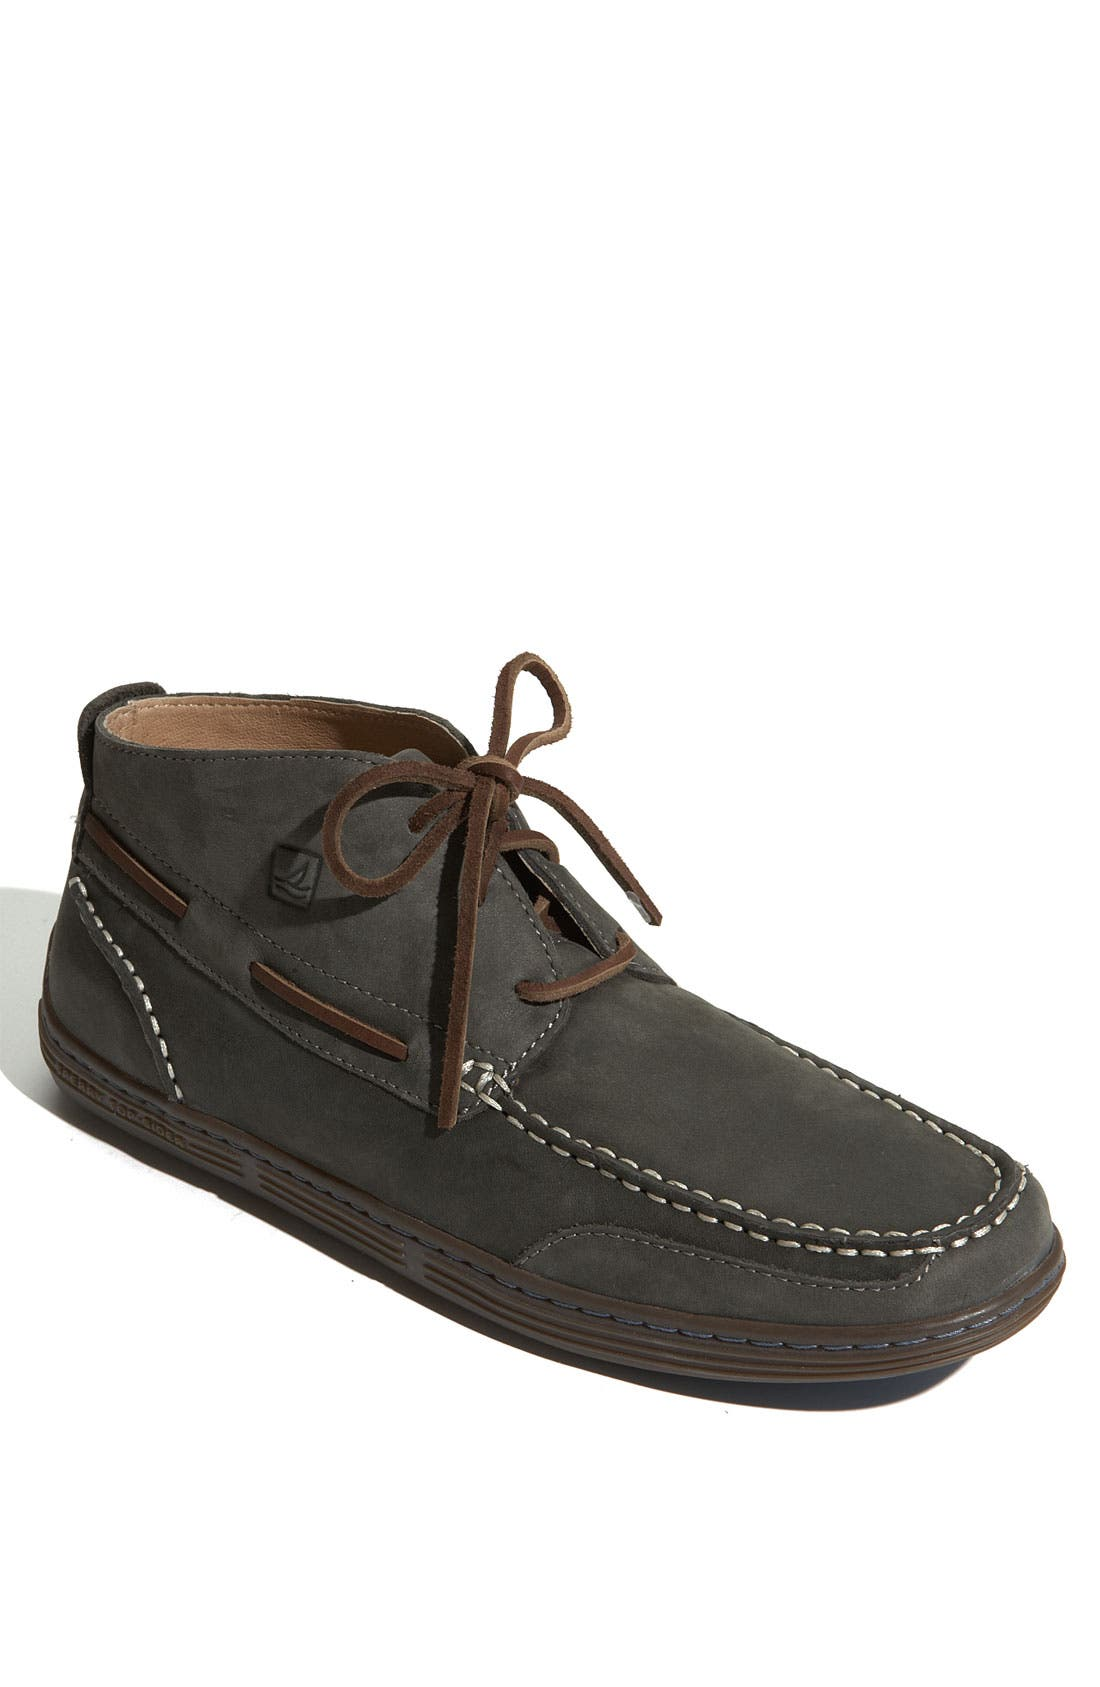 Main Image - Sperry Top-Sider® 'Harbor' Chukka Boot